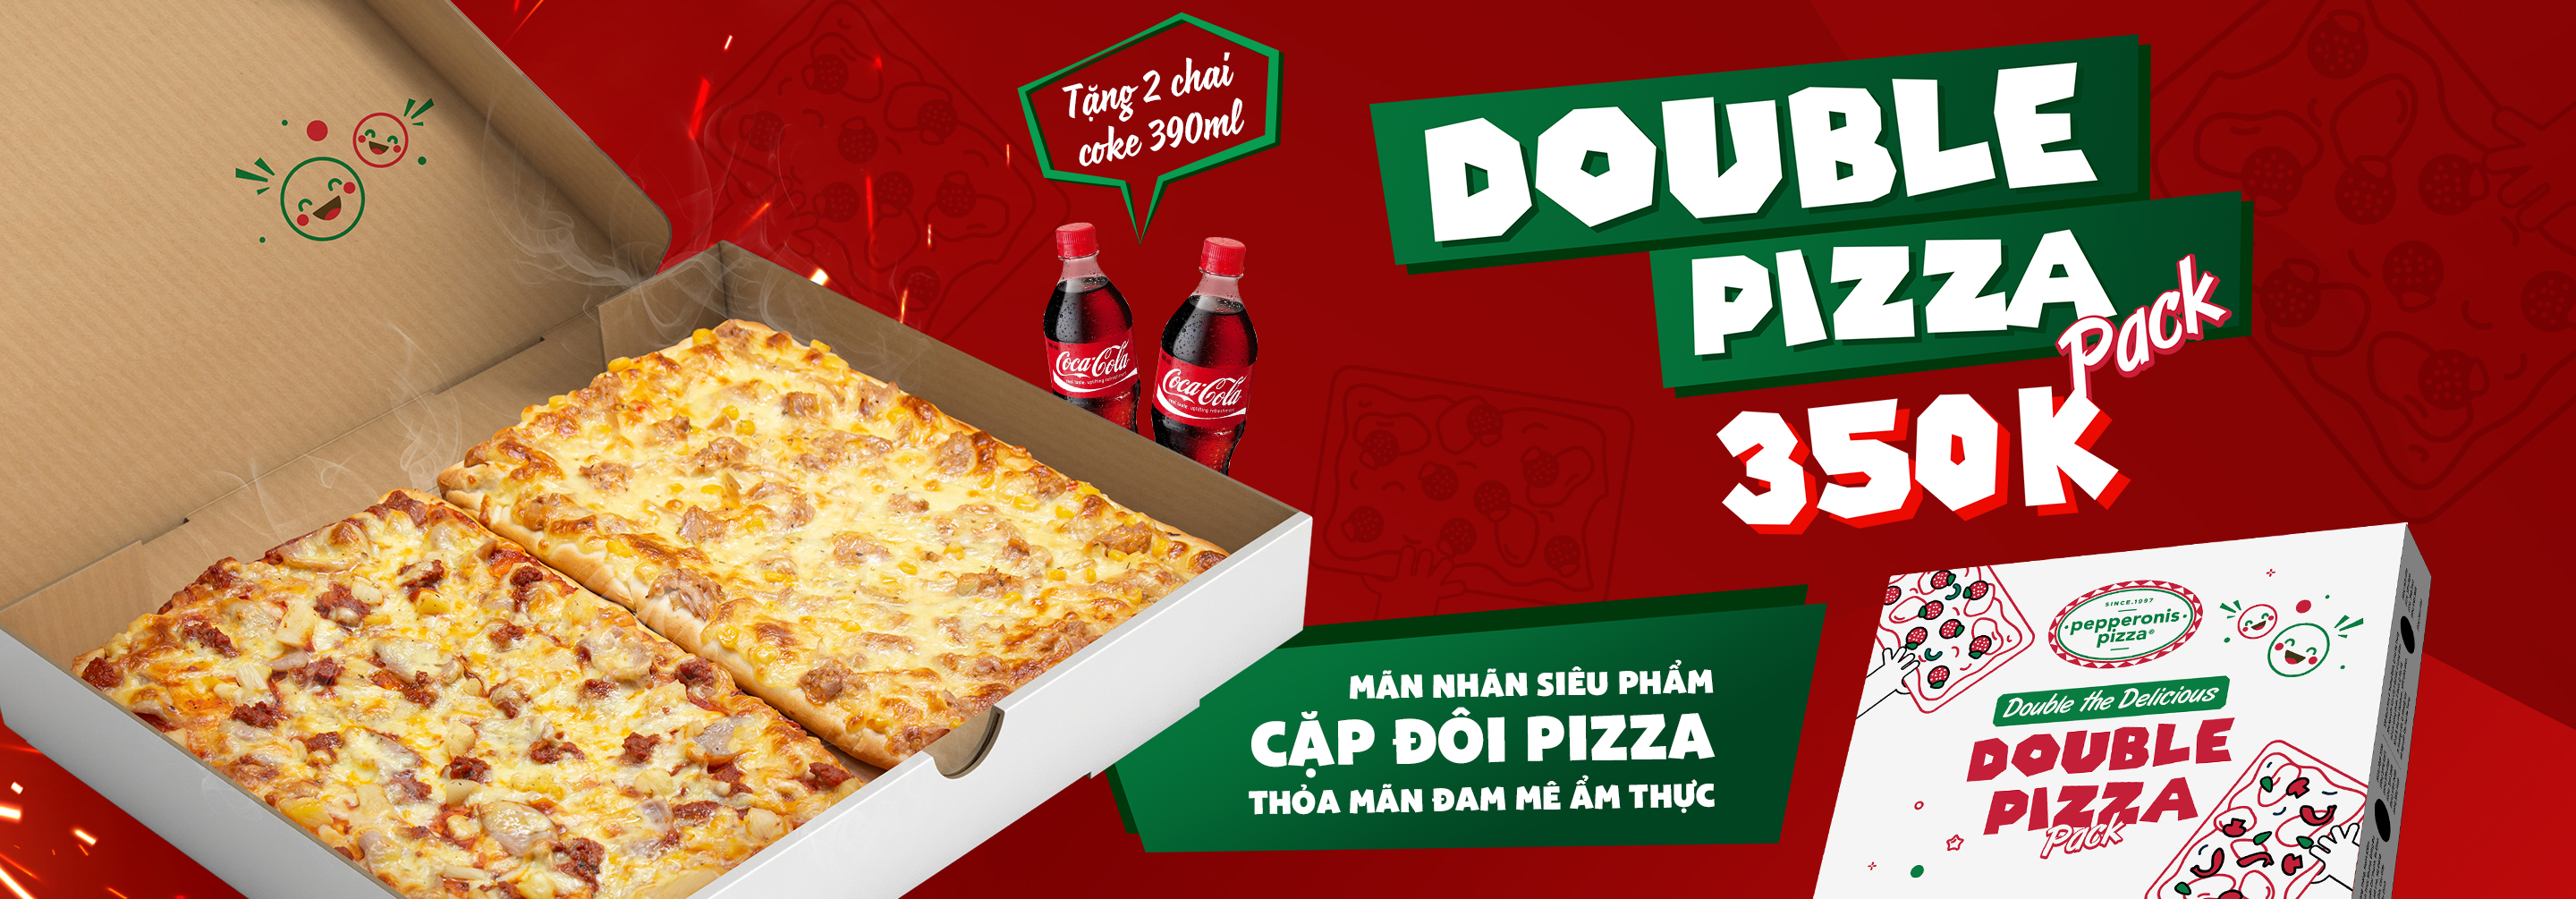 DOUBLE PIZZA PACK 350K